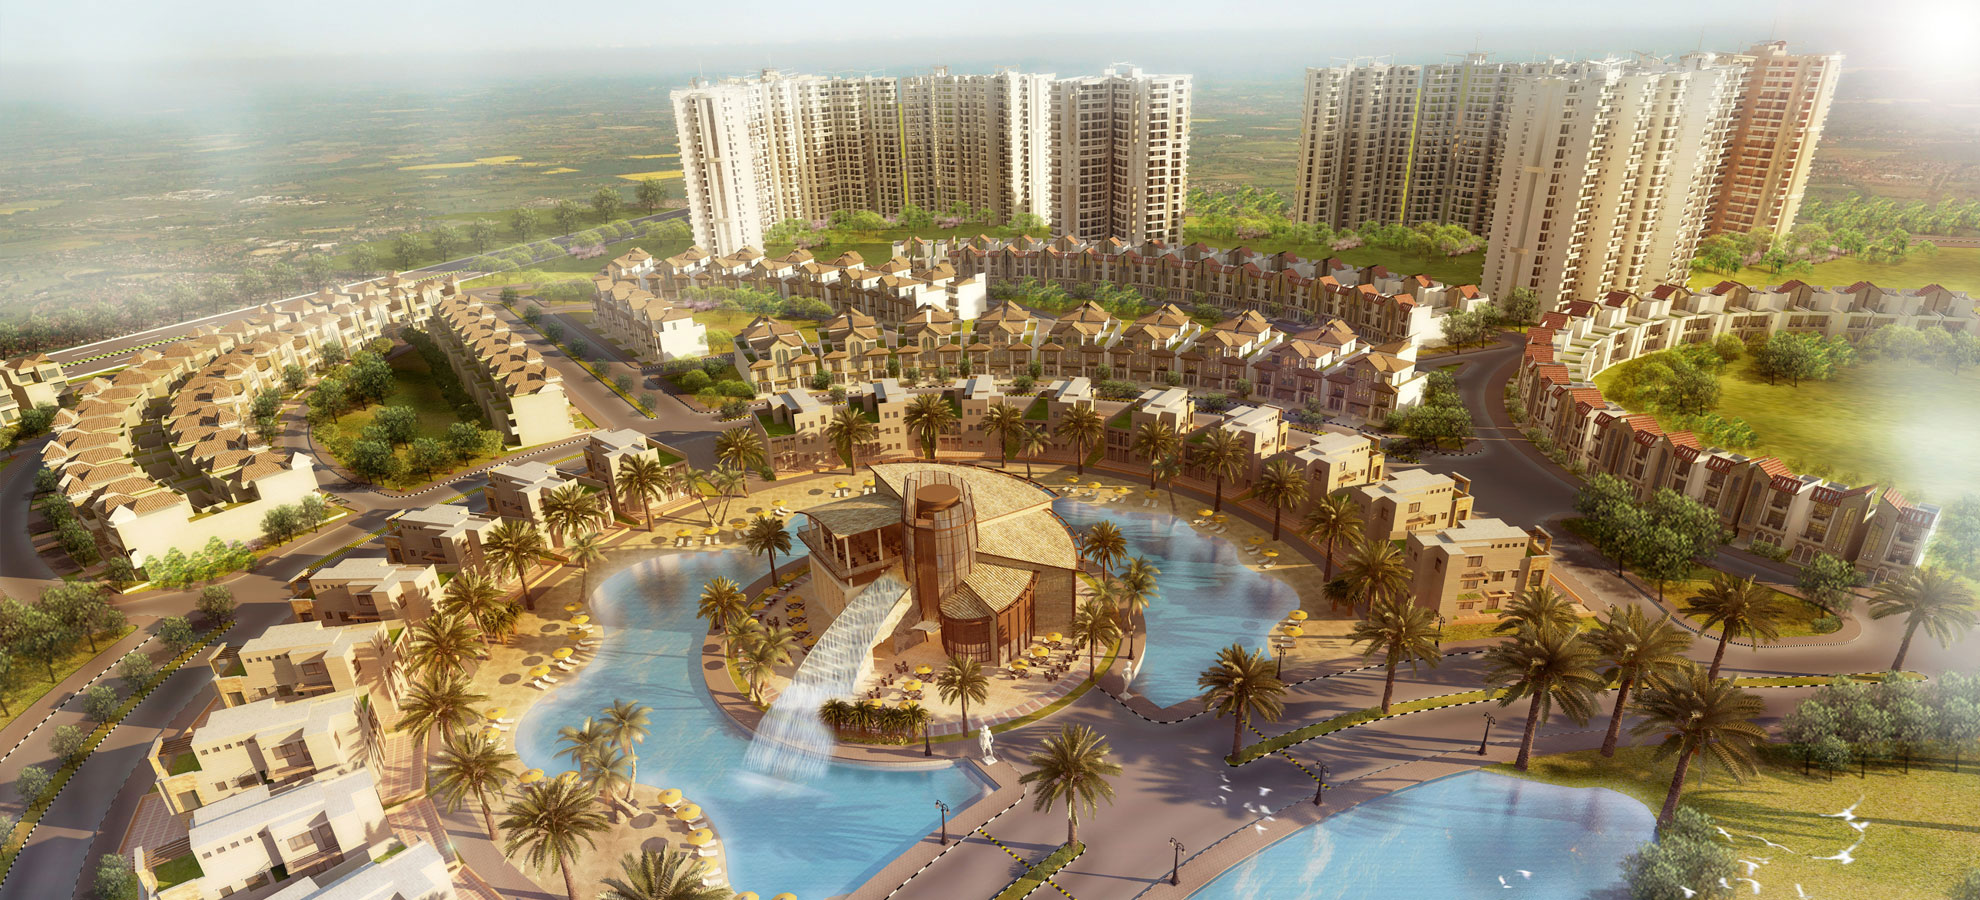 Supertech UpCountry | Township in Greater Noida, Yamuna Expressway